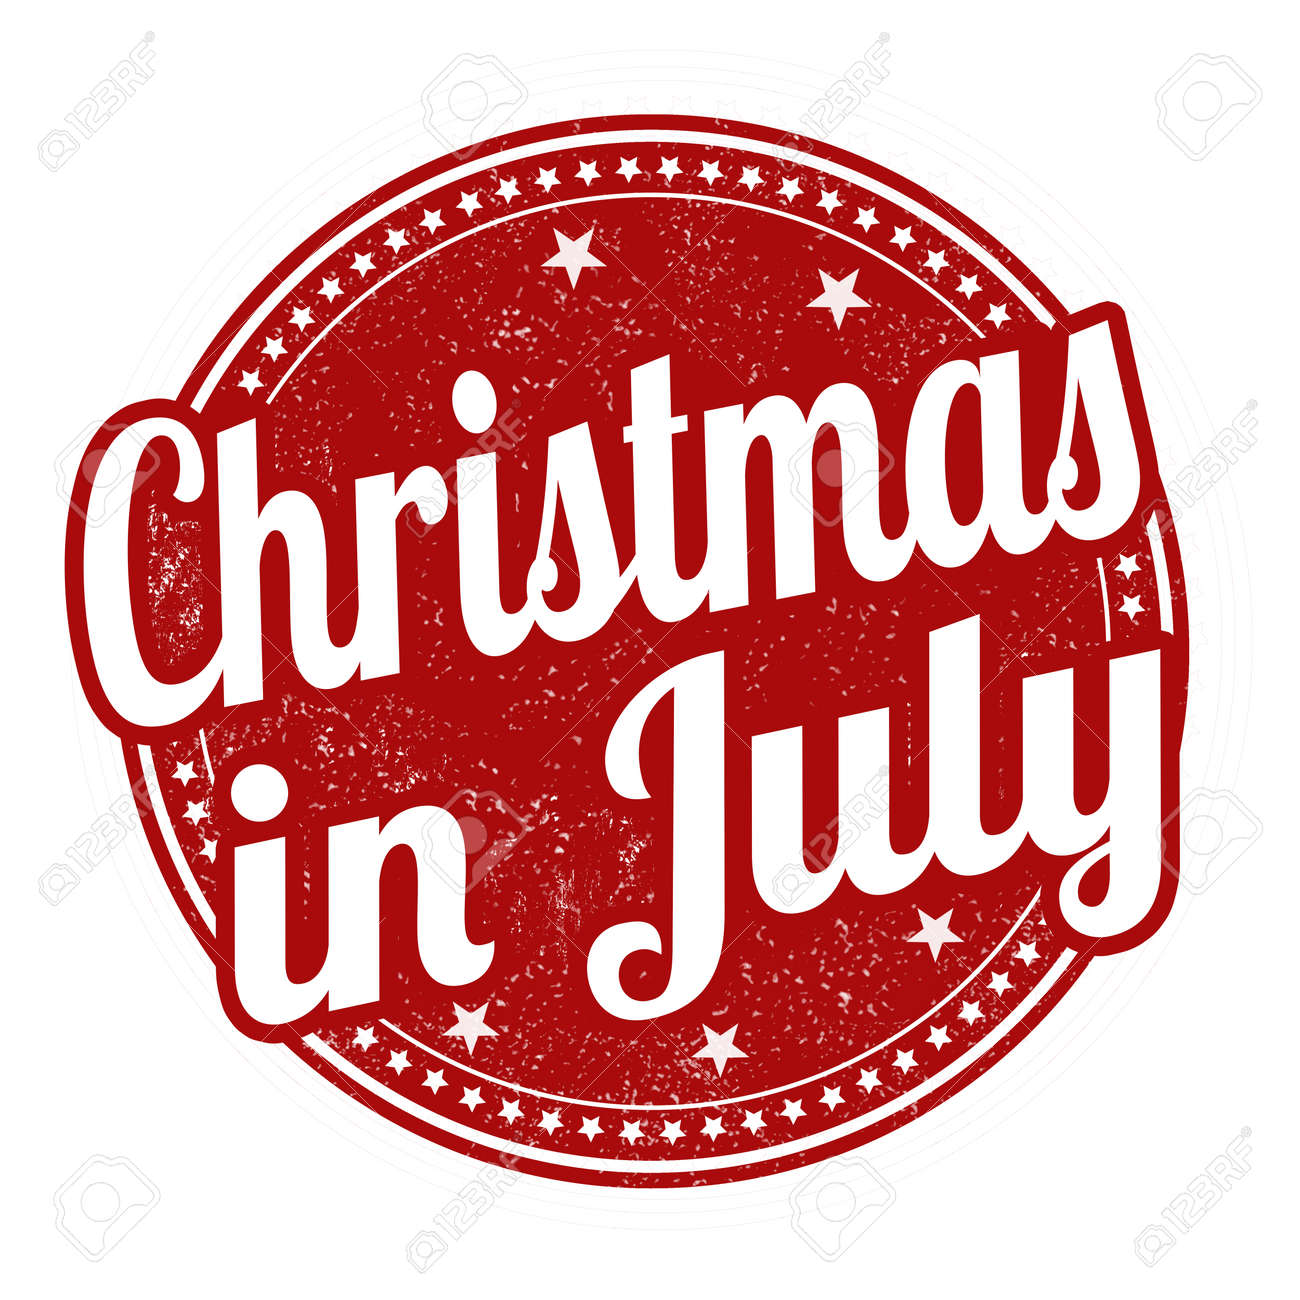 Christmas In July Free Image.Christmas In July Grunge Rubber Stamp On White Background Vector